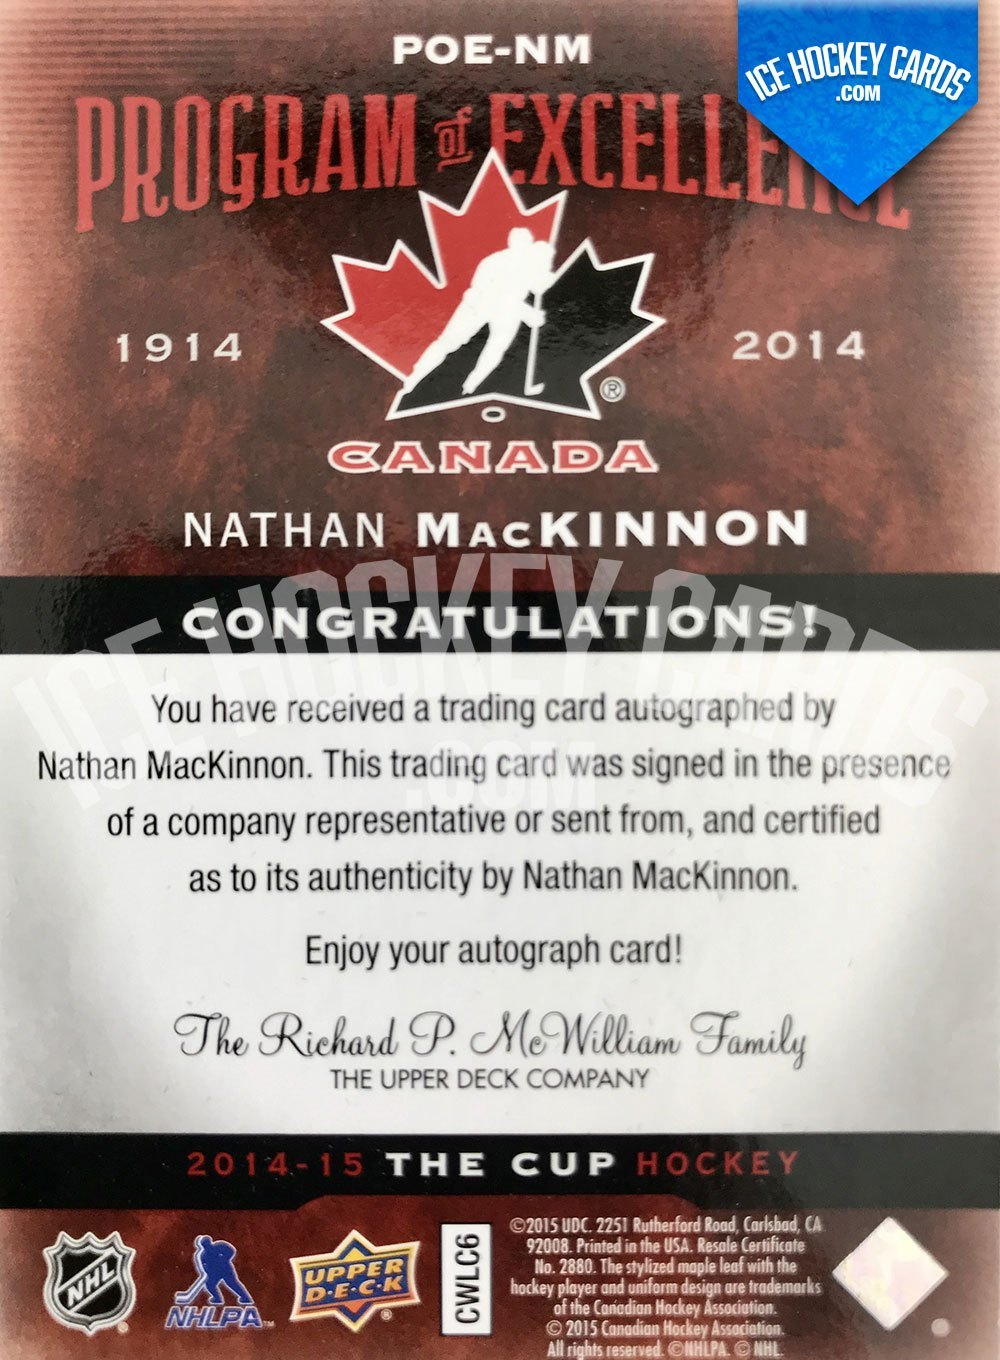 Upper Deck - The Cup 2014-15 - Nathan MacKinnon Program of Excellence Team Canada Autograph # 10 of 10 back RARE